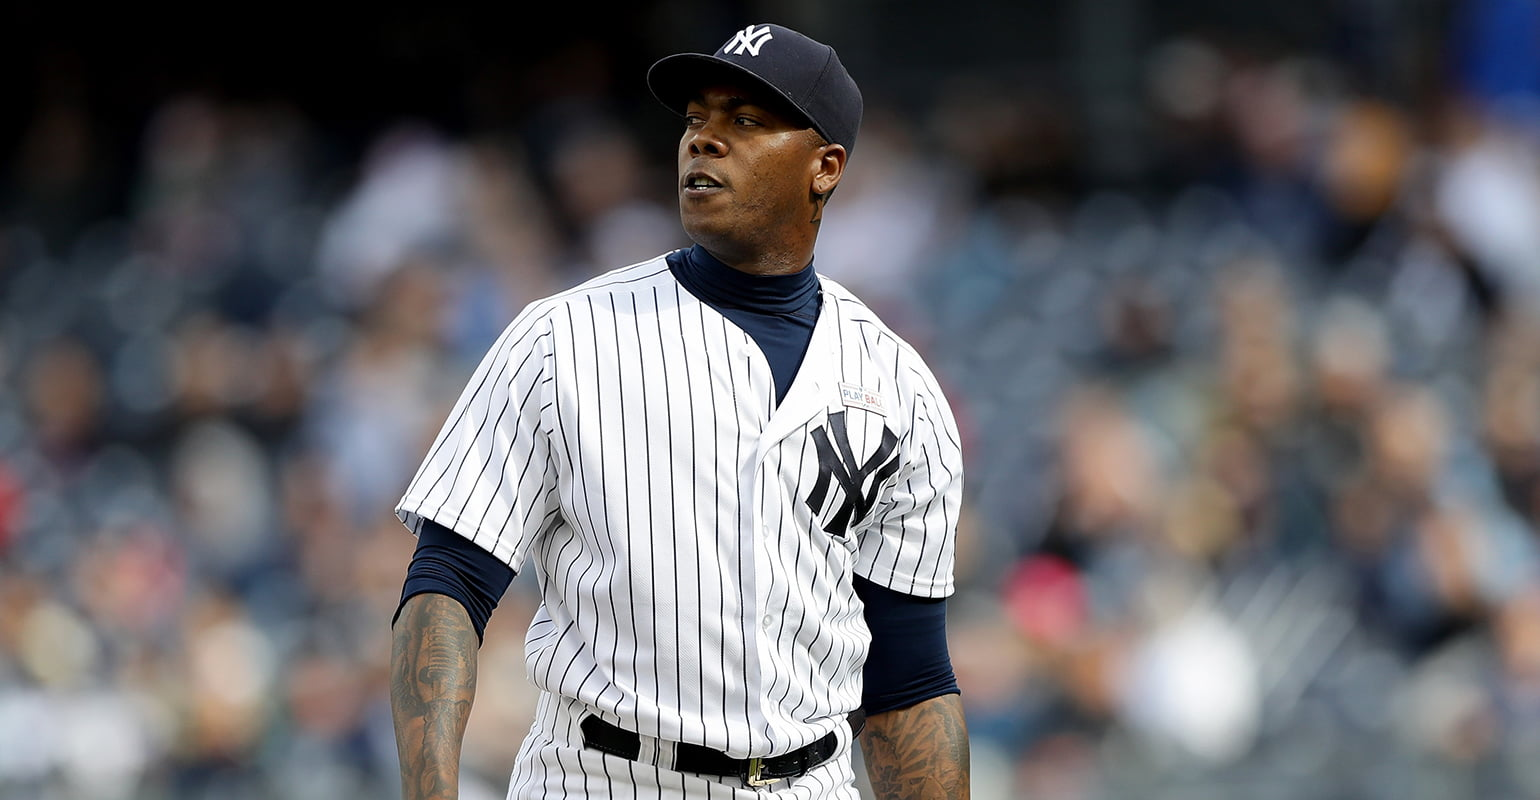 New York Yankees Pitcher Aroldis Chapman Sues His Former Advisor